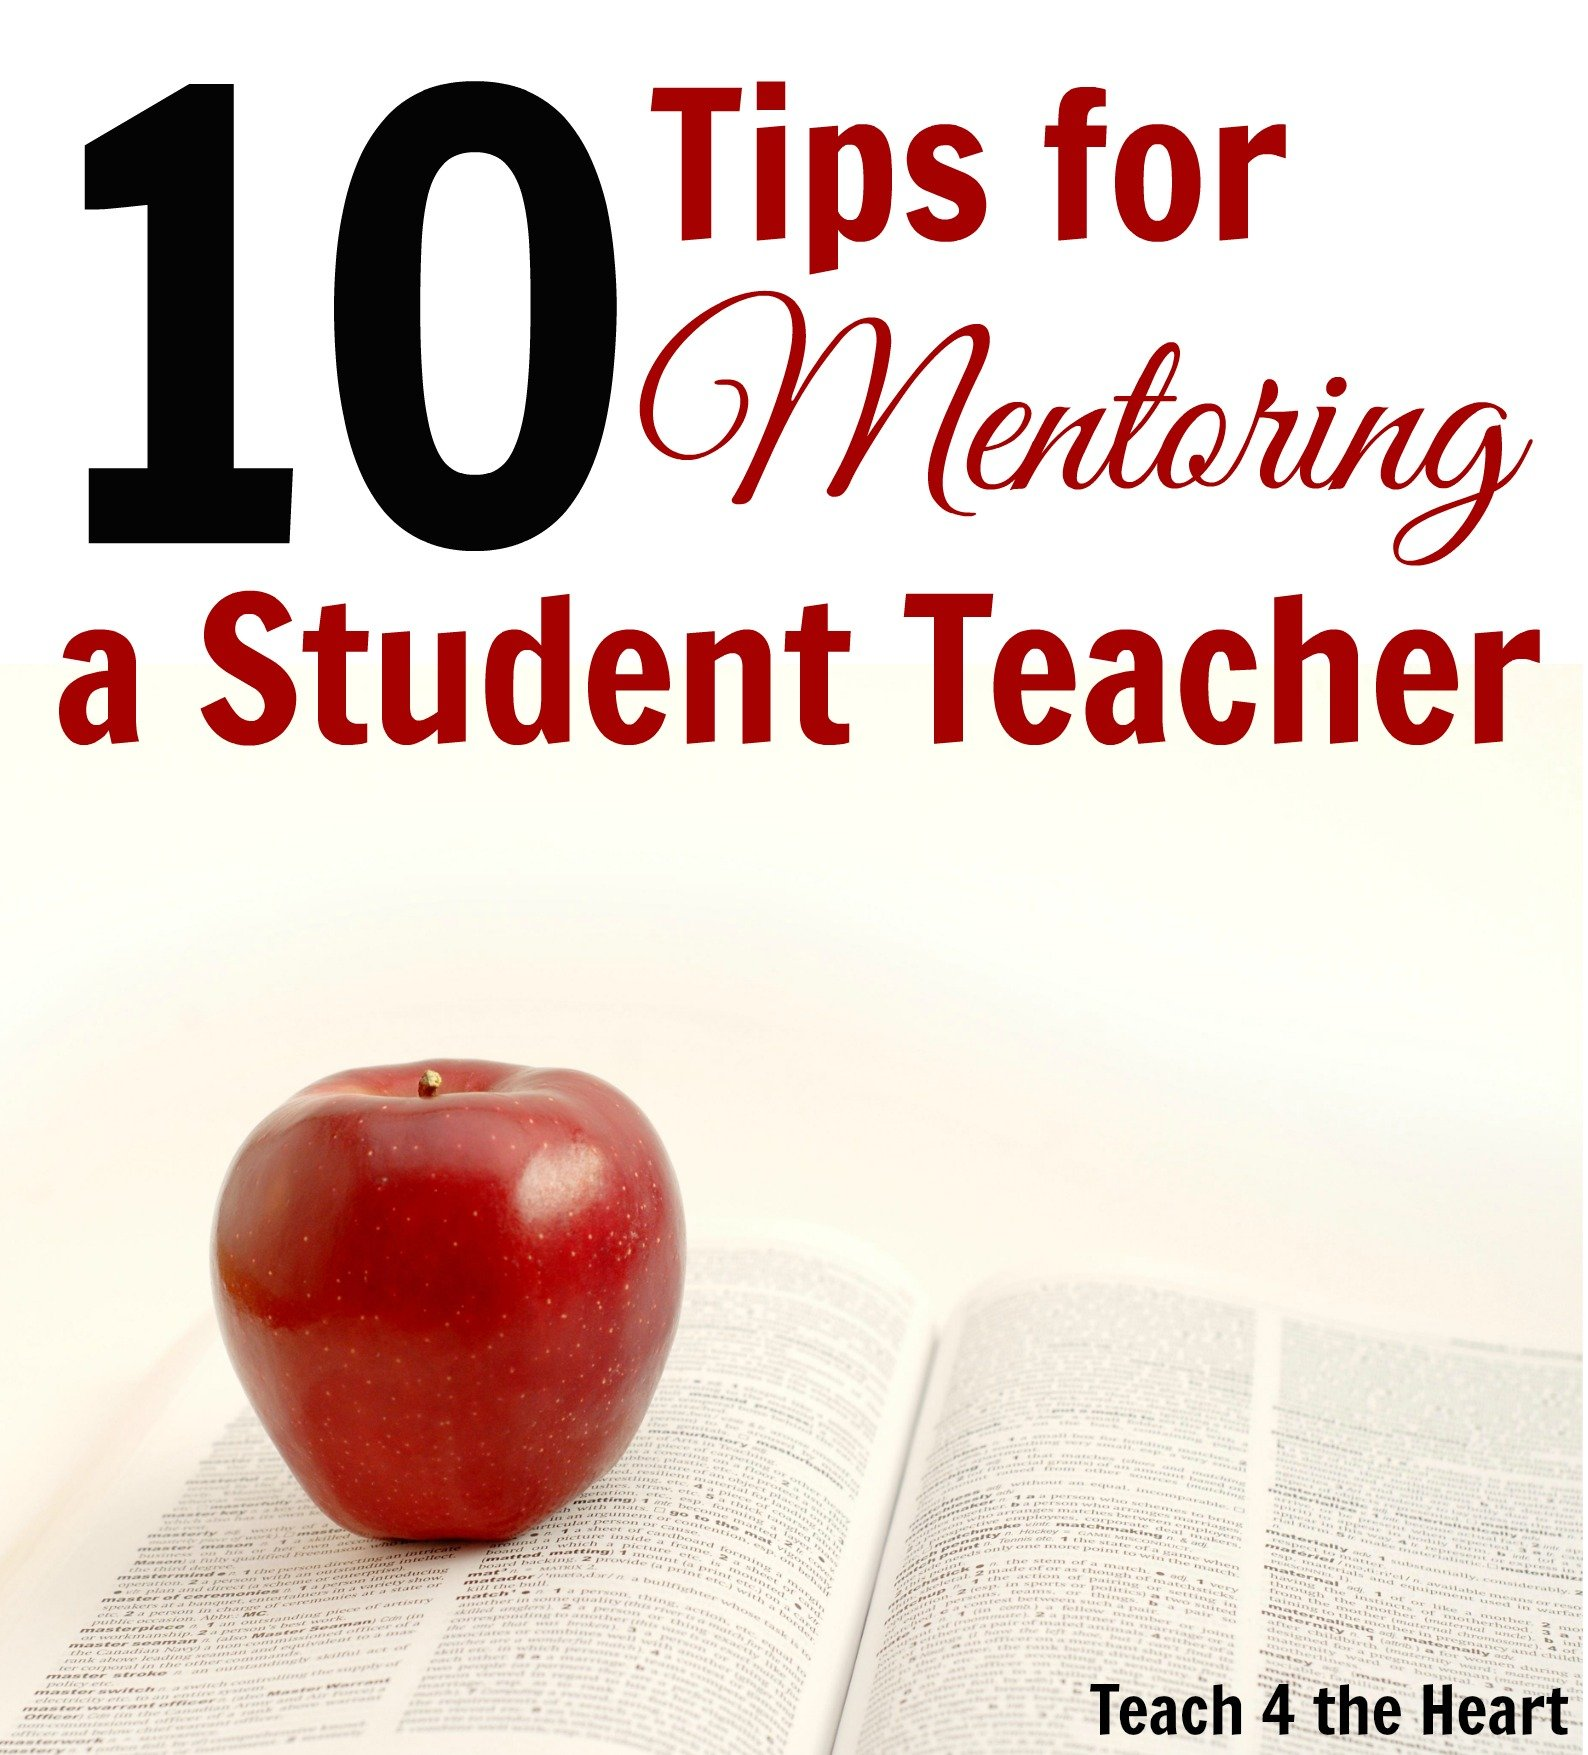 How to Best Prepare Your Student Teacher: 10 Tips for Mentor Teachers